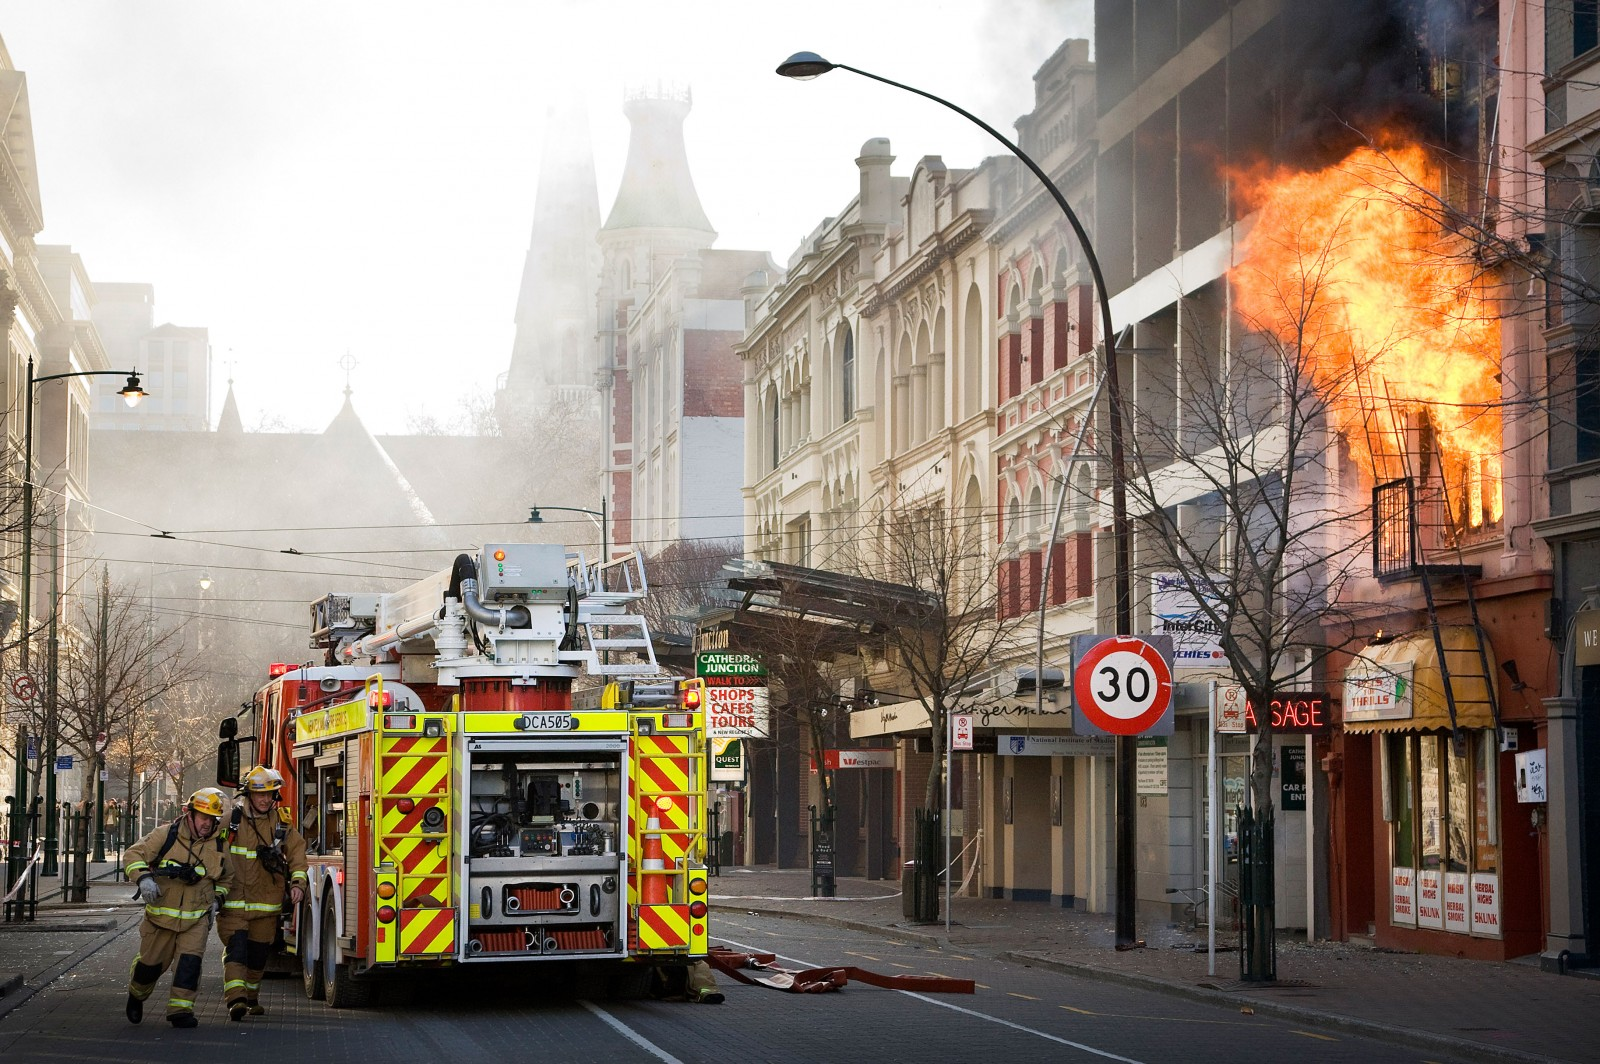 Firefighters battle a blaze along Worchester Street after the 7.1 magnitude earthquake struck 30 km west of the city at 4:35 am. Civil Defence declared a state of emergency.